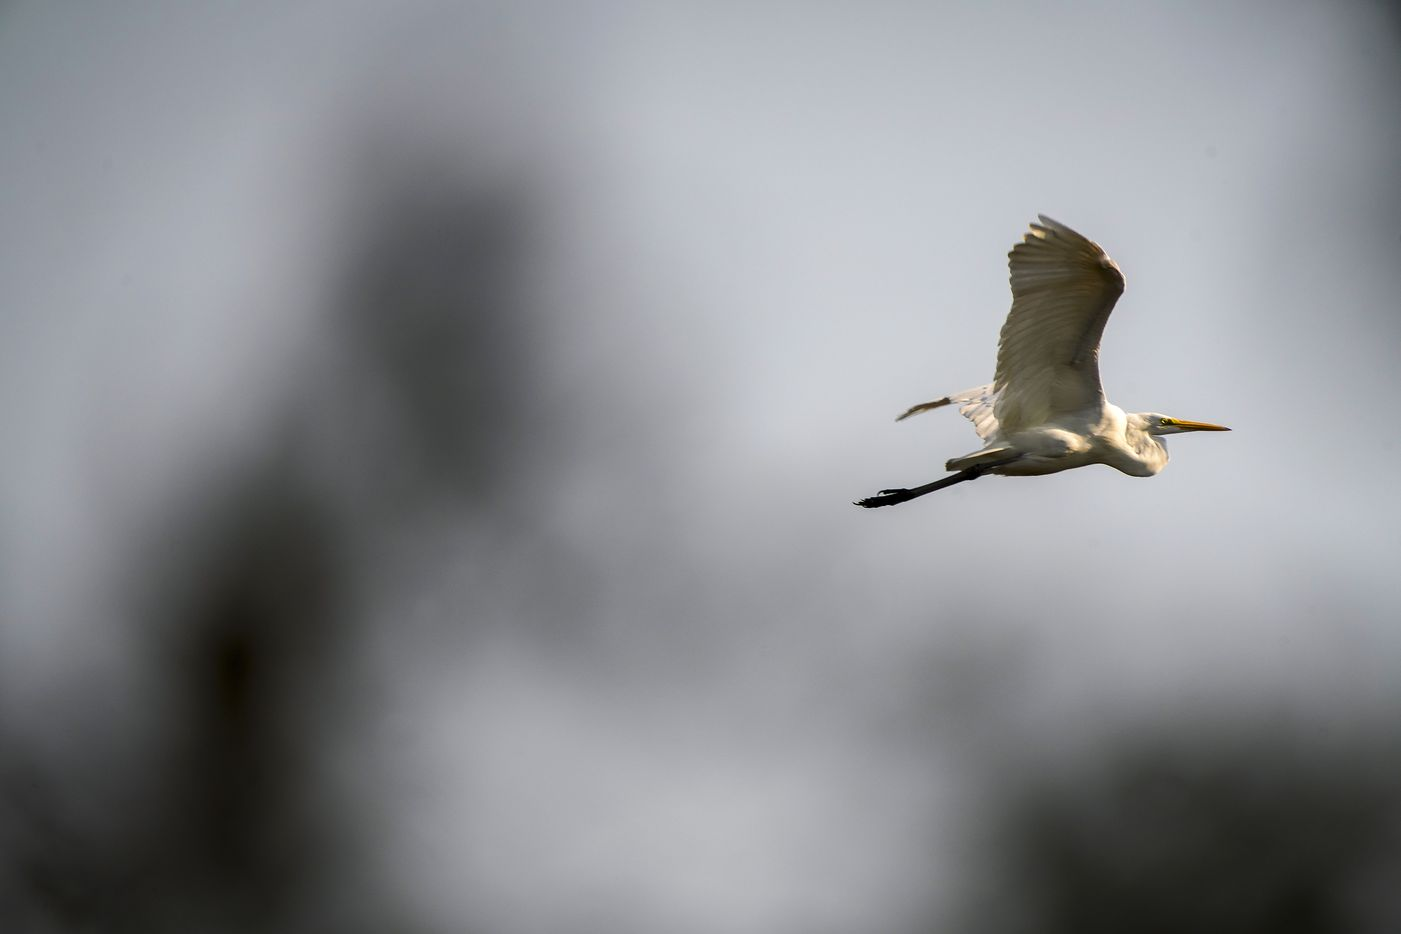 A Great Egret flies over Raccoon Pond at Trinity River Audubon Center on Wednesday, Oct. 7, 2020, in Dallas. (Smiley N. Pool/The Dallas Morning News)